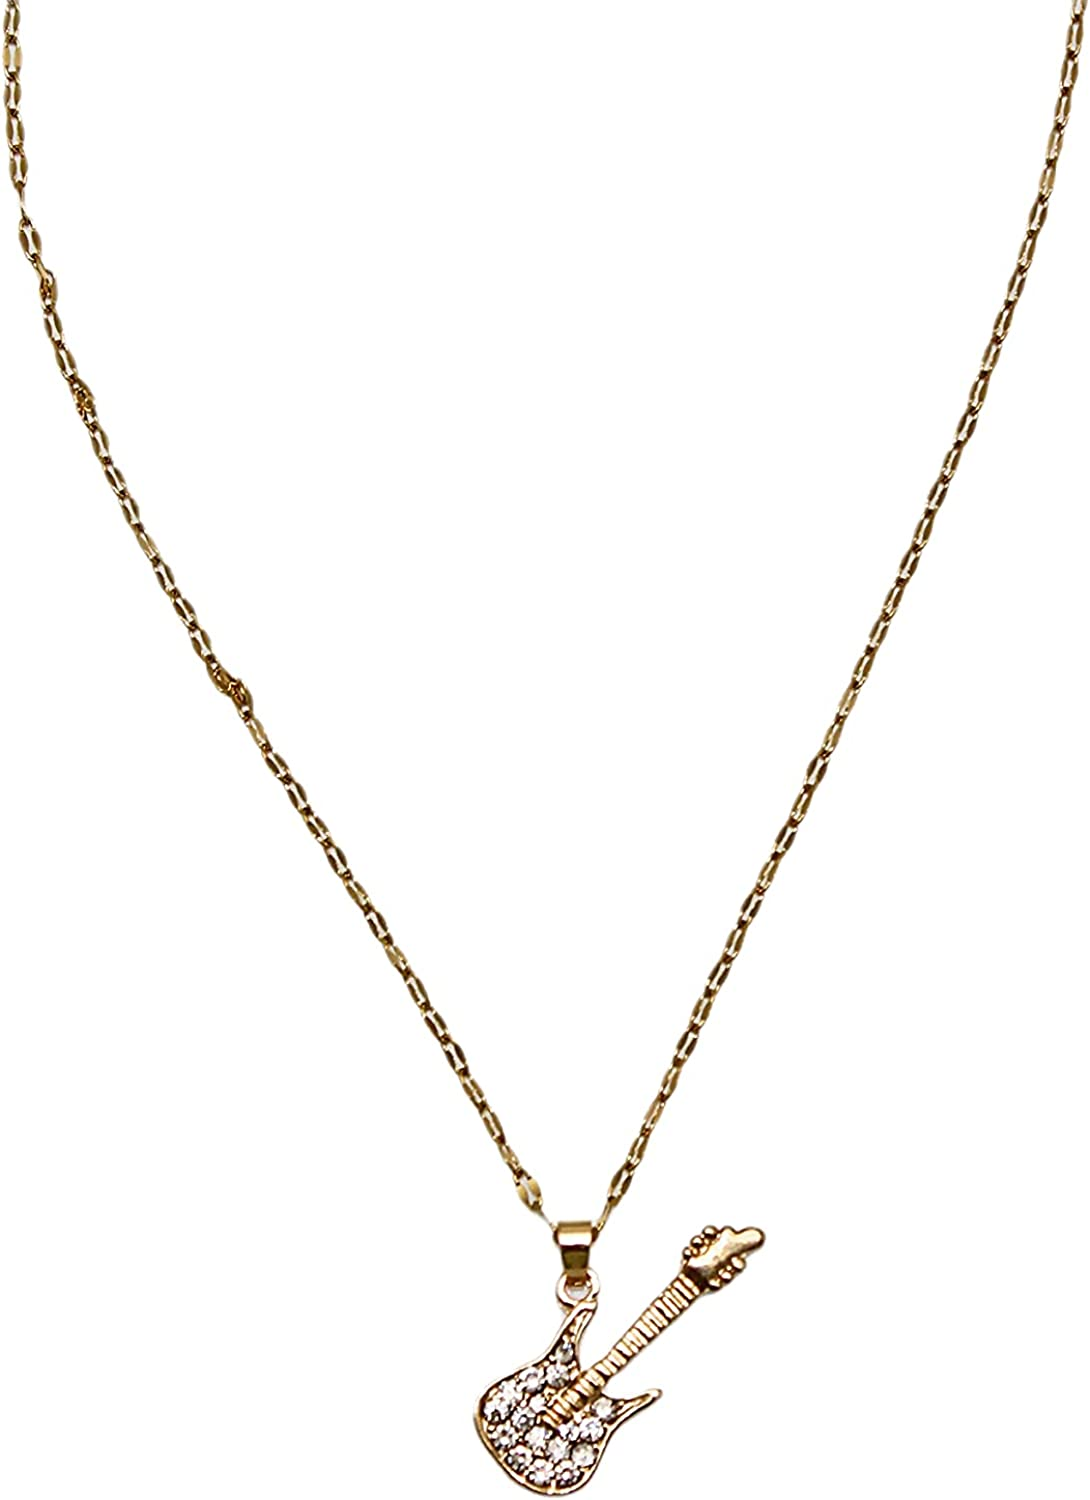 Qianxiang handmade 18K Gold Plated y Pendant Necklace diamond Guitar Necklace adjustable necklace women's necklace 2021